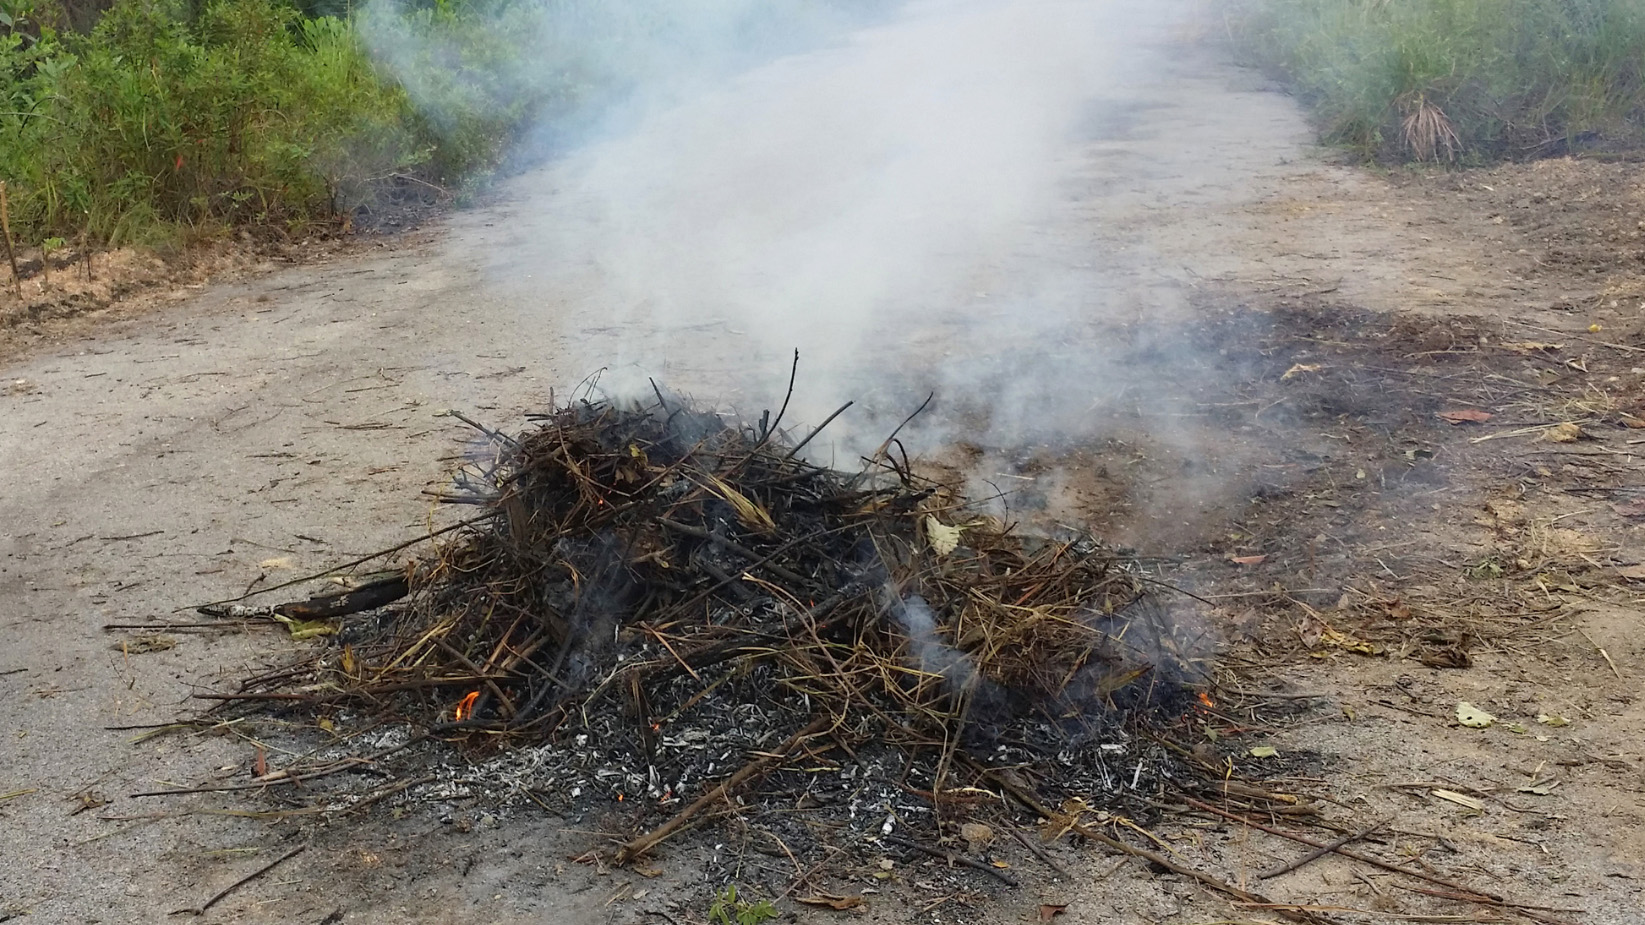 Outdoor burning taking place in a rural area